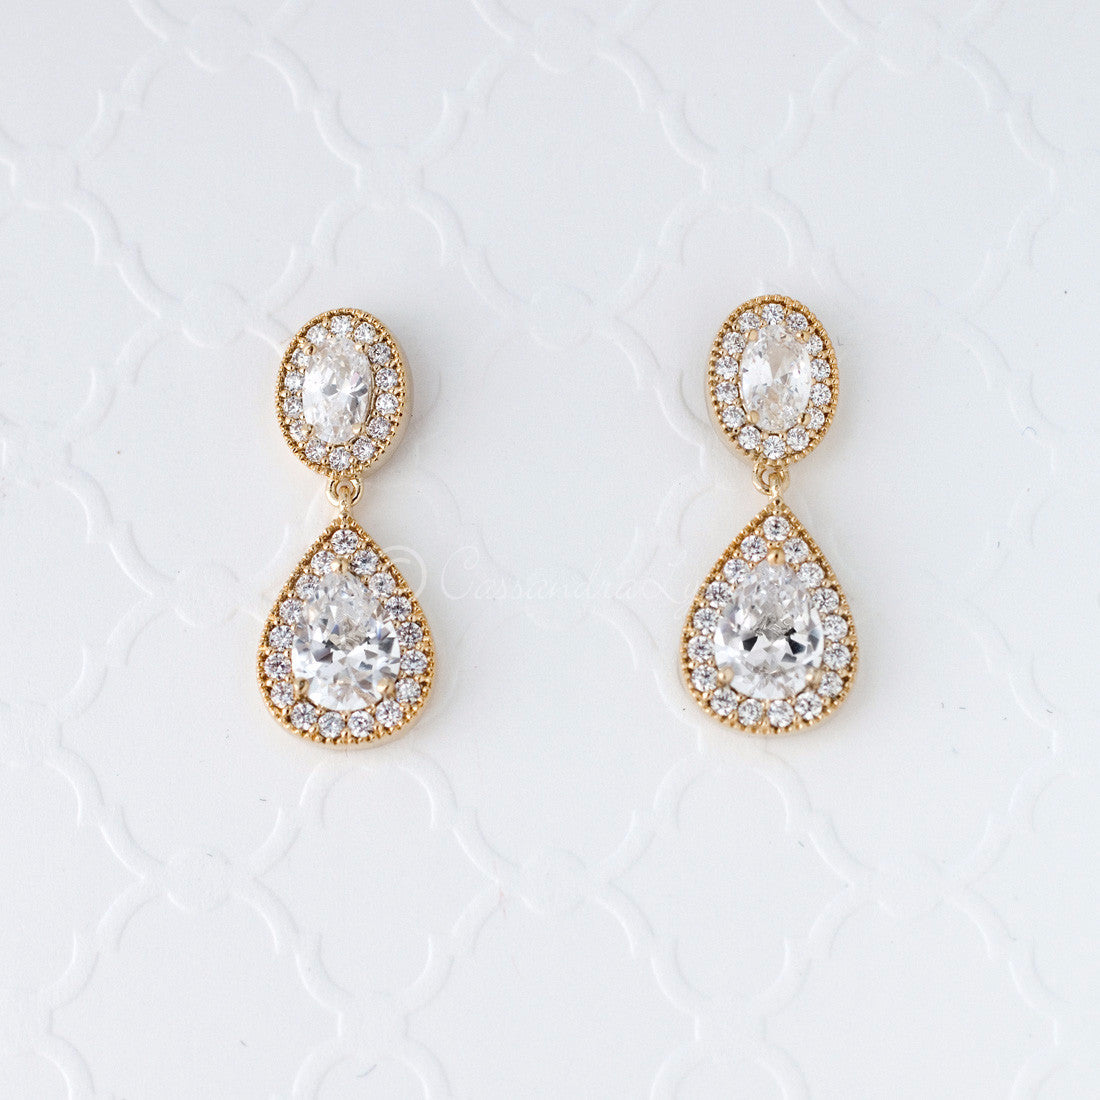 CZ Drop Earrings for Brides of Oval and Teardrop Jewels